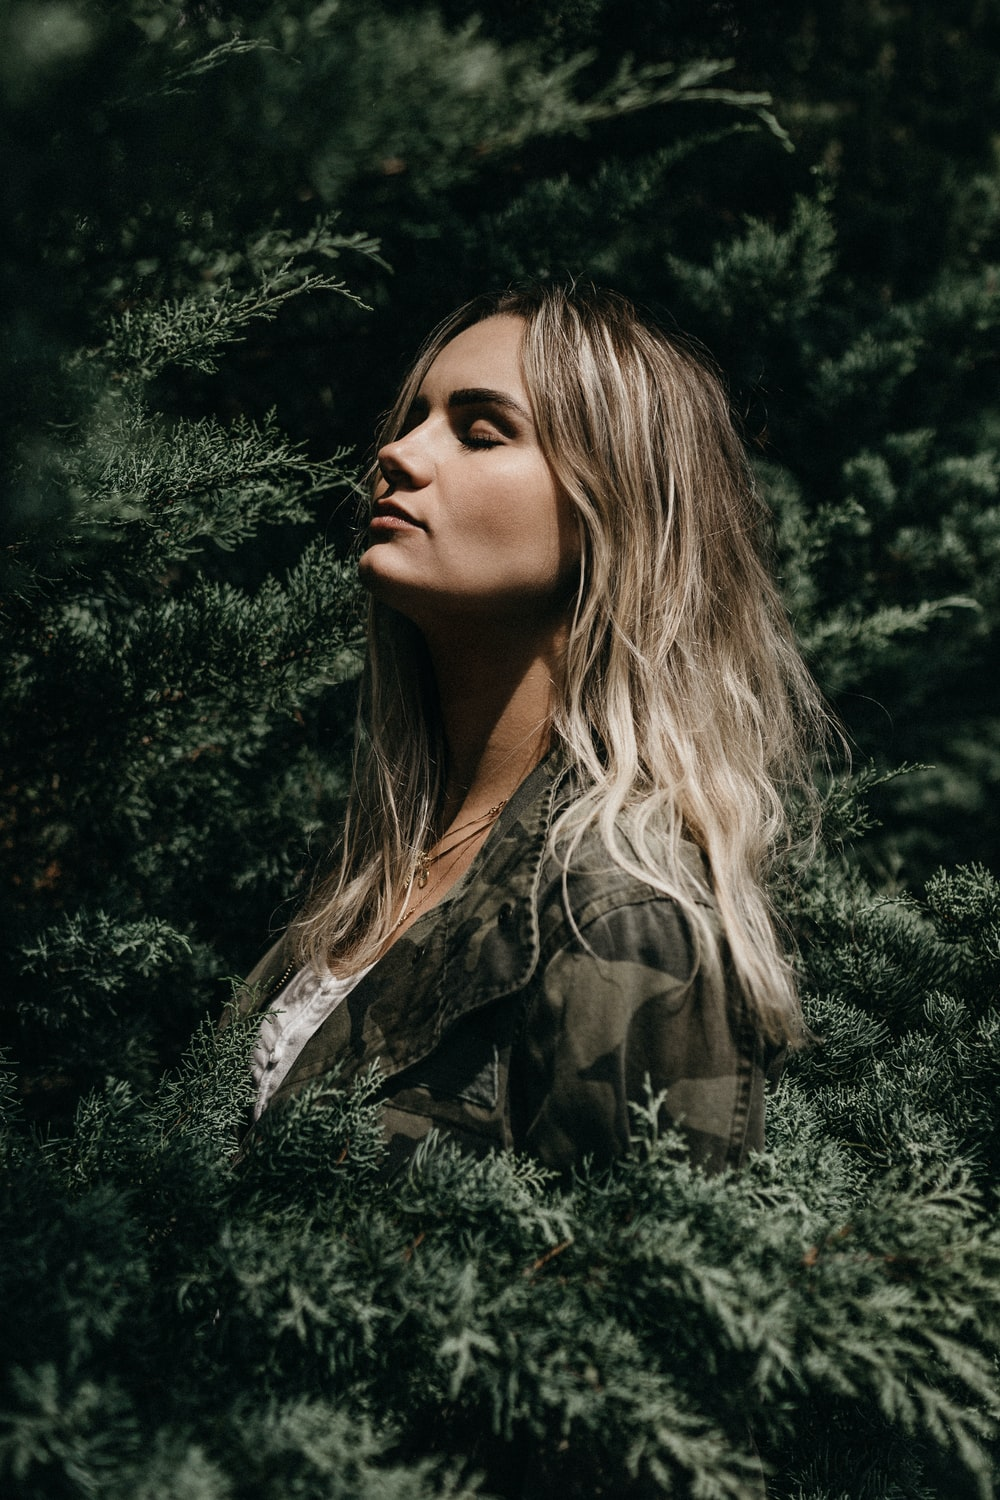 woman in woodland camouflage on trees